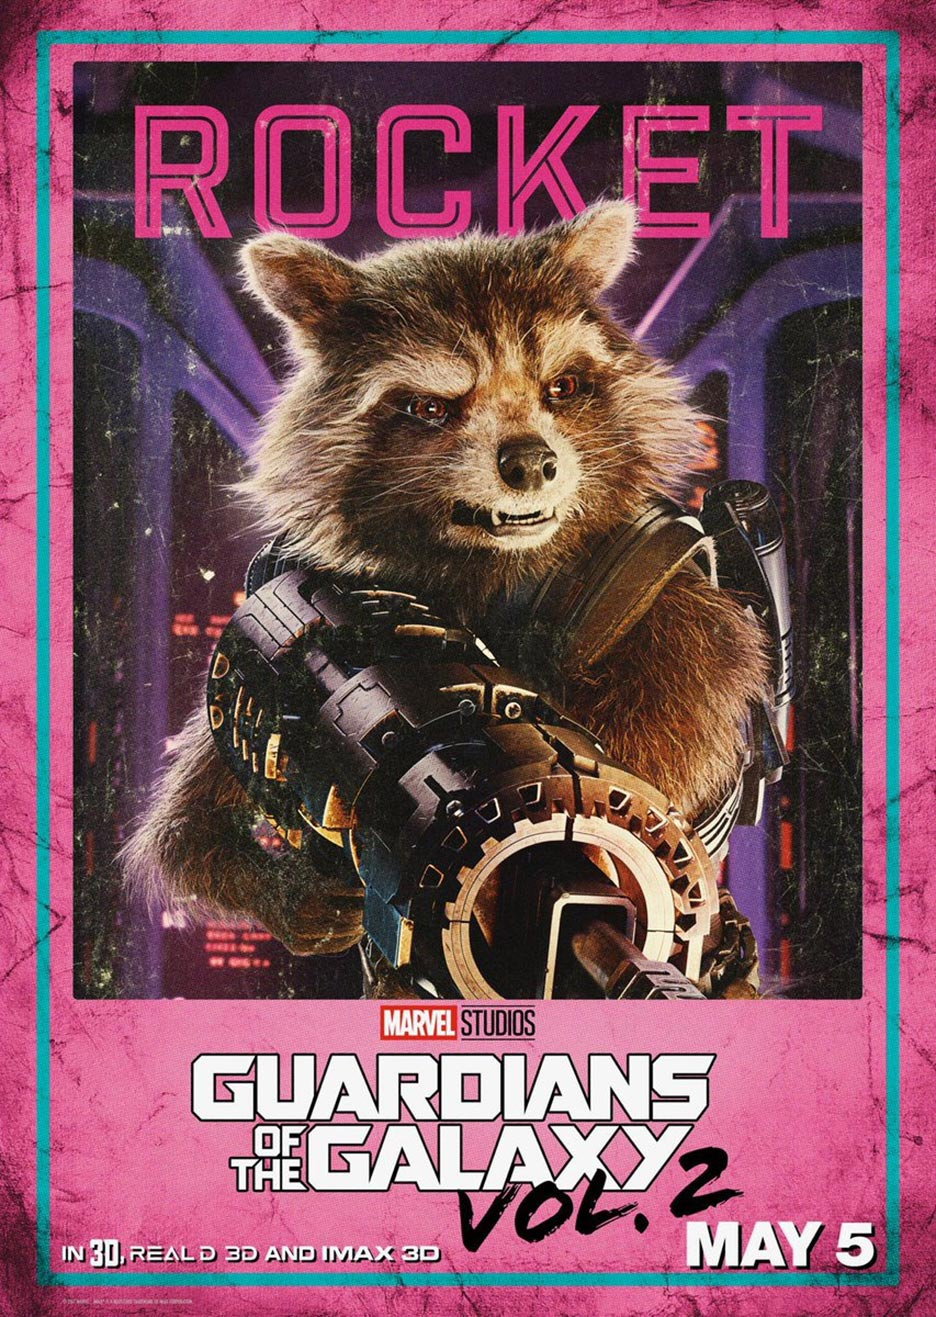 Guardian-of-the-galaxy-vol-2-high-quality-printable-posters-wallpapers-rocket-racoon